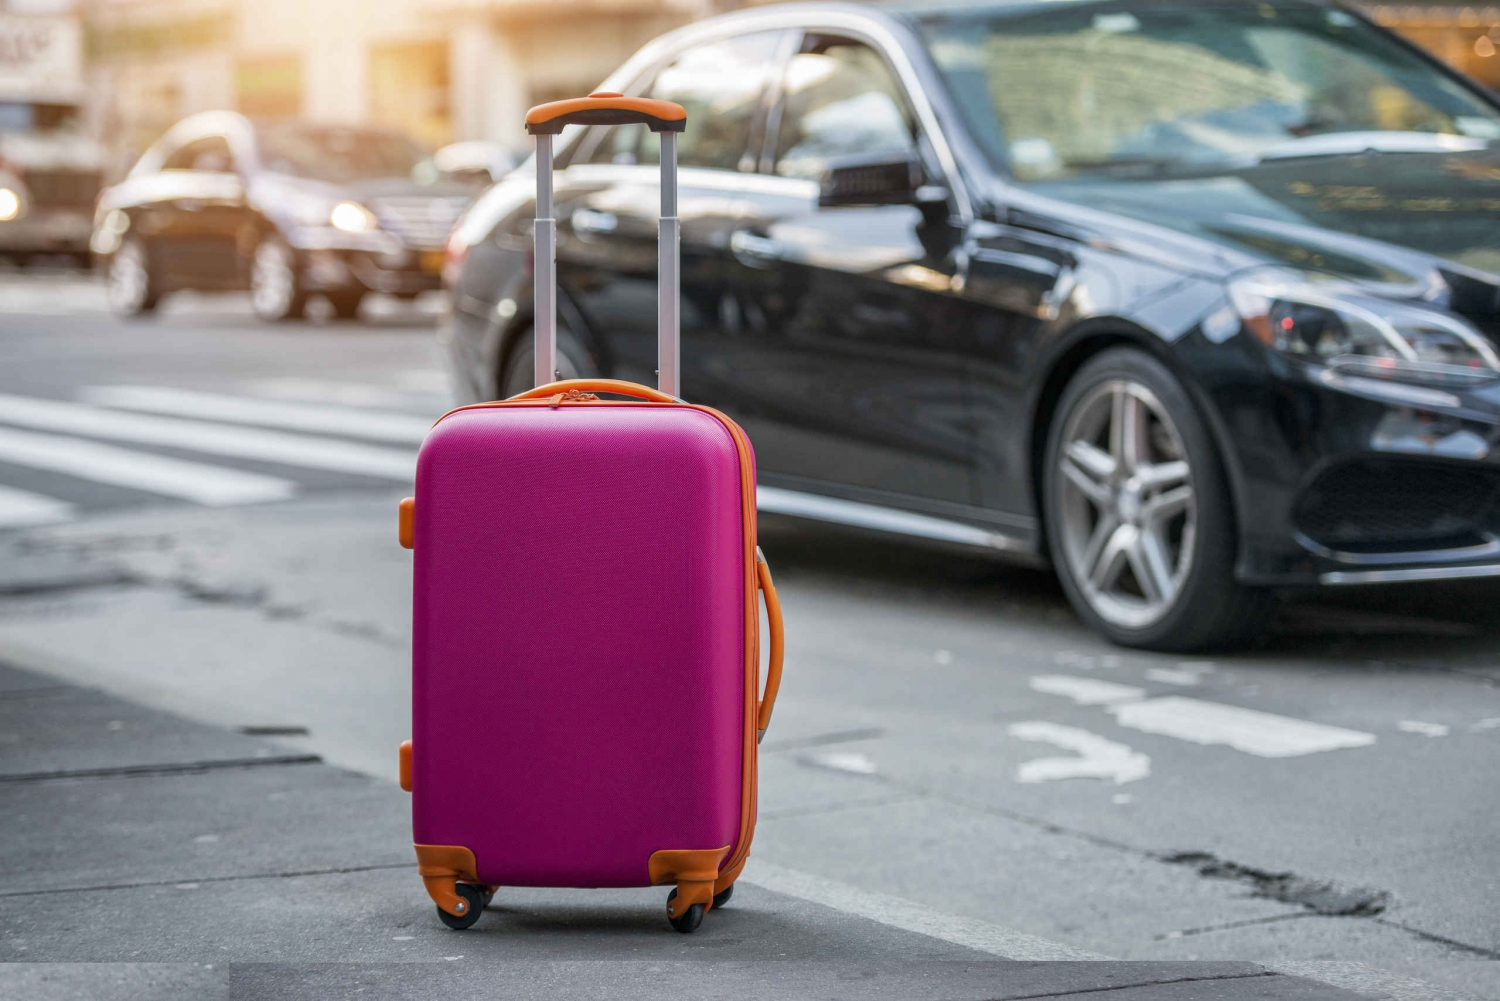 St. Petersburg Pulkovo Airport to City Center Transfer 24hr